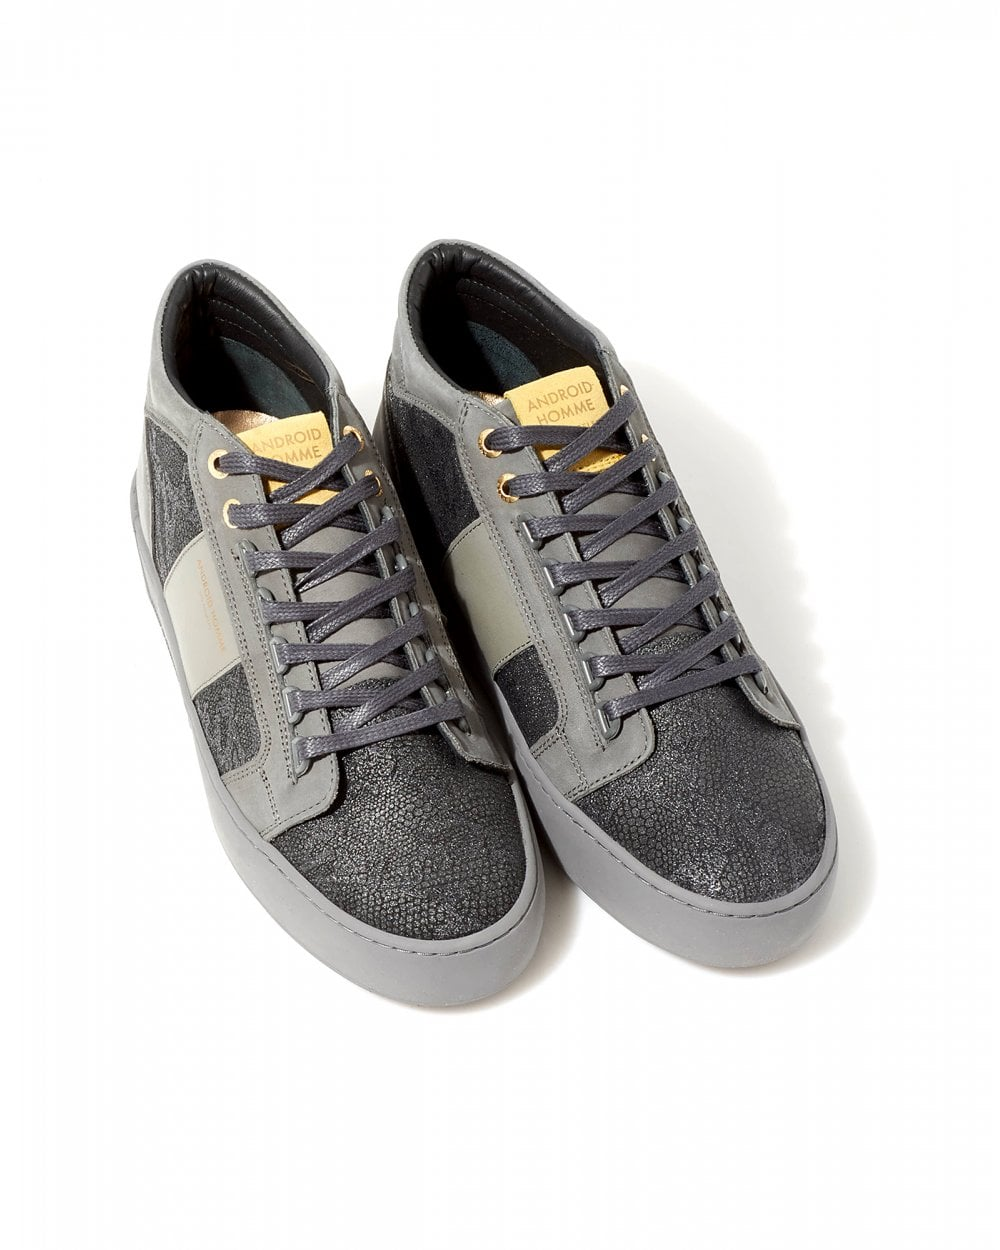 b27b5472e7d Android homme mens graphite python print propulsion trainers black hybrid  sneakers image jpg 1000x1250 Python andord